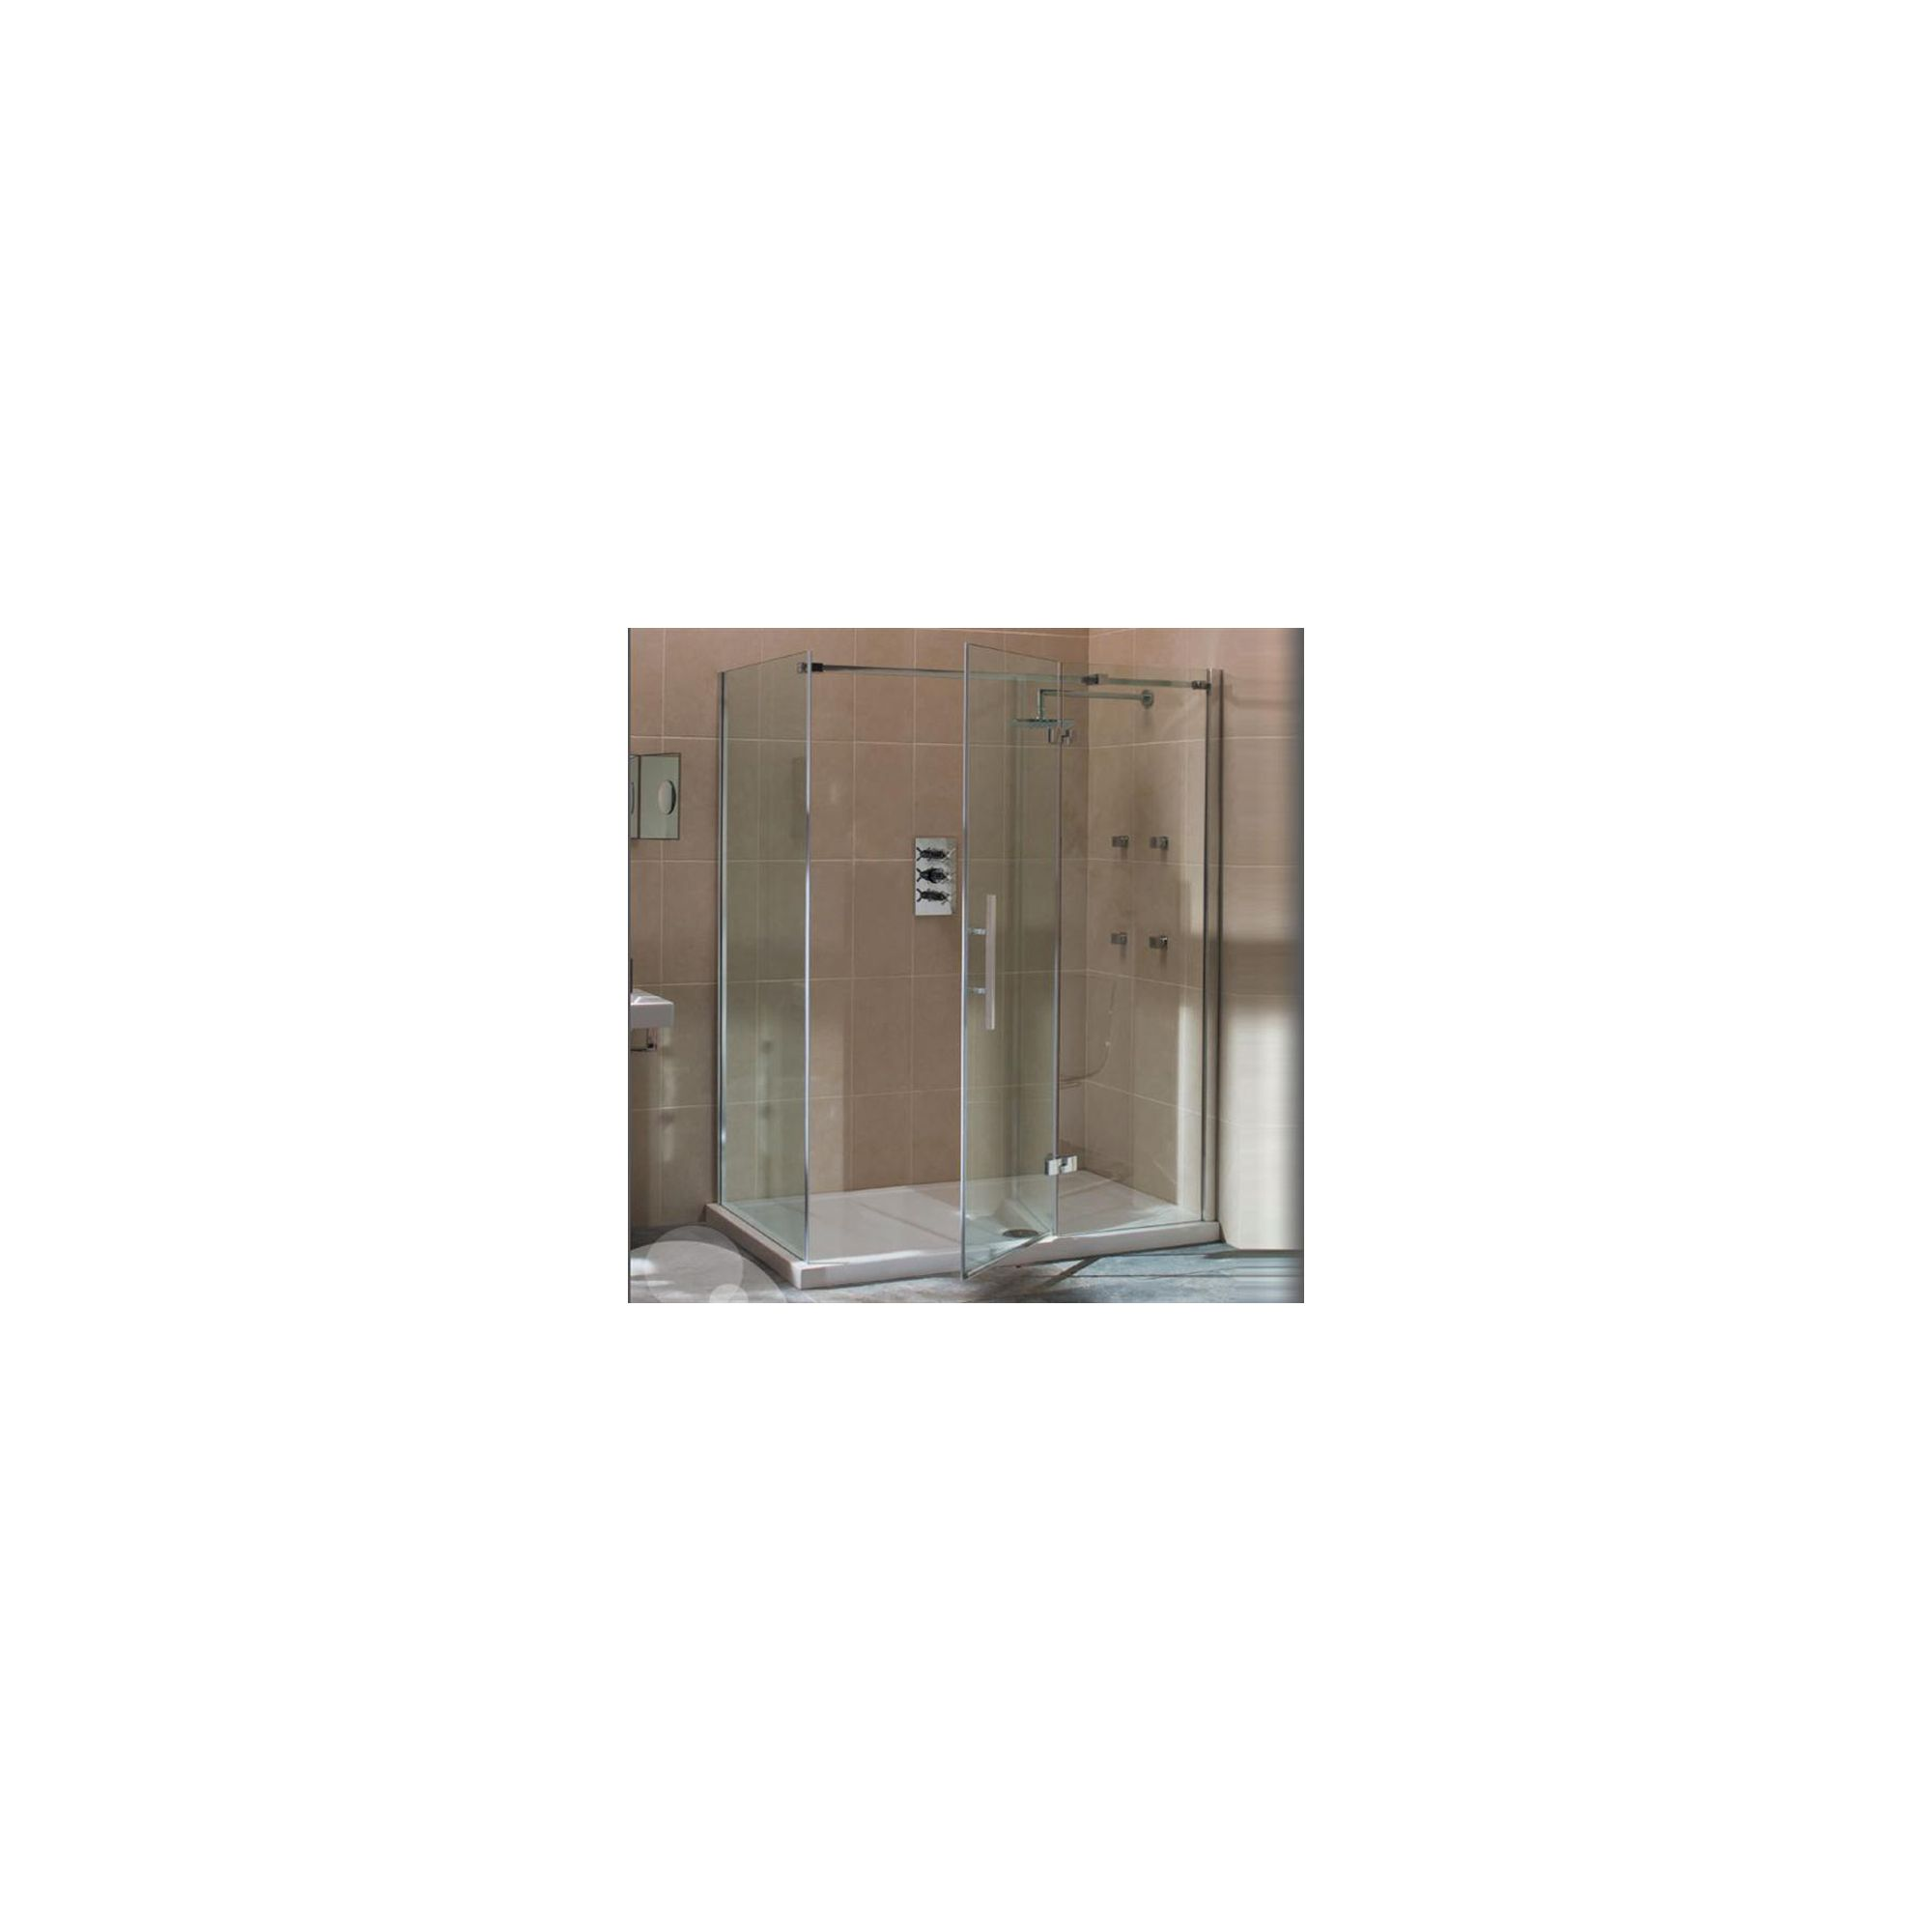 Merlyn Vivid Nine Frameless Hinged Shower Door and Inline Panel, 1100mm Wide, Right Handed, 8mm Glass at Tesco Direct